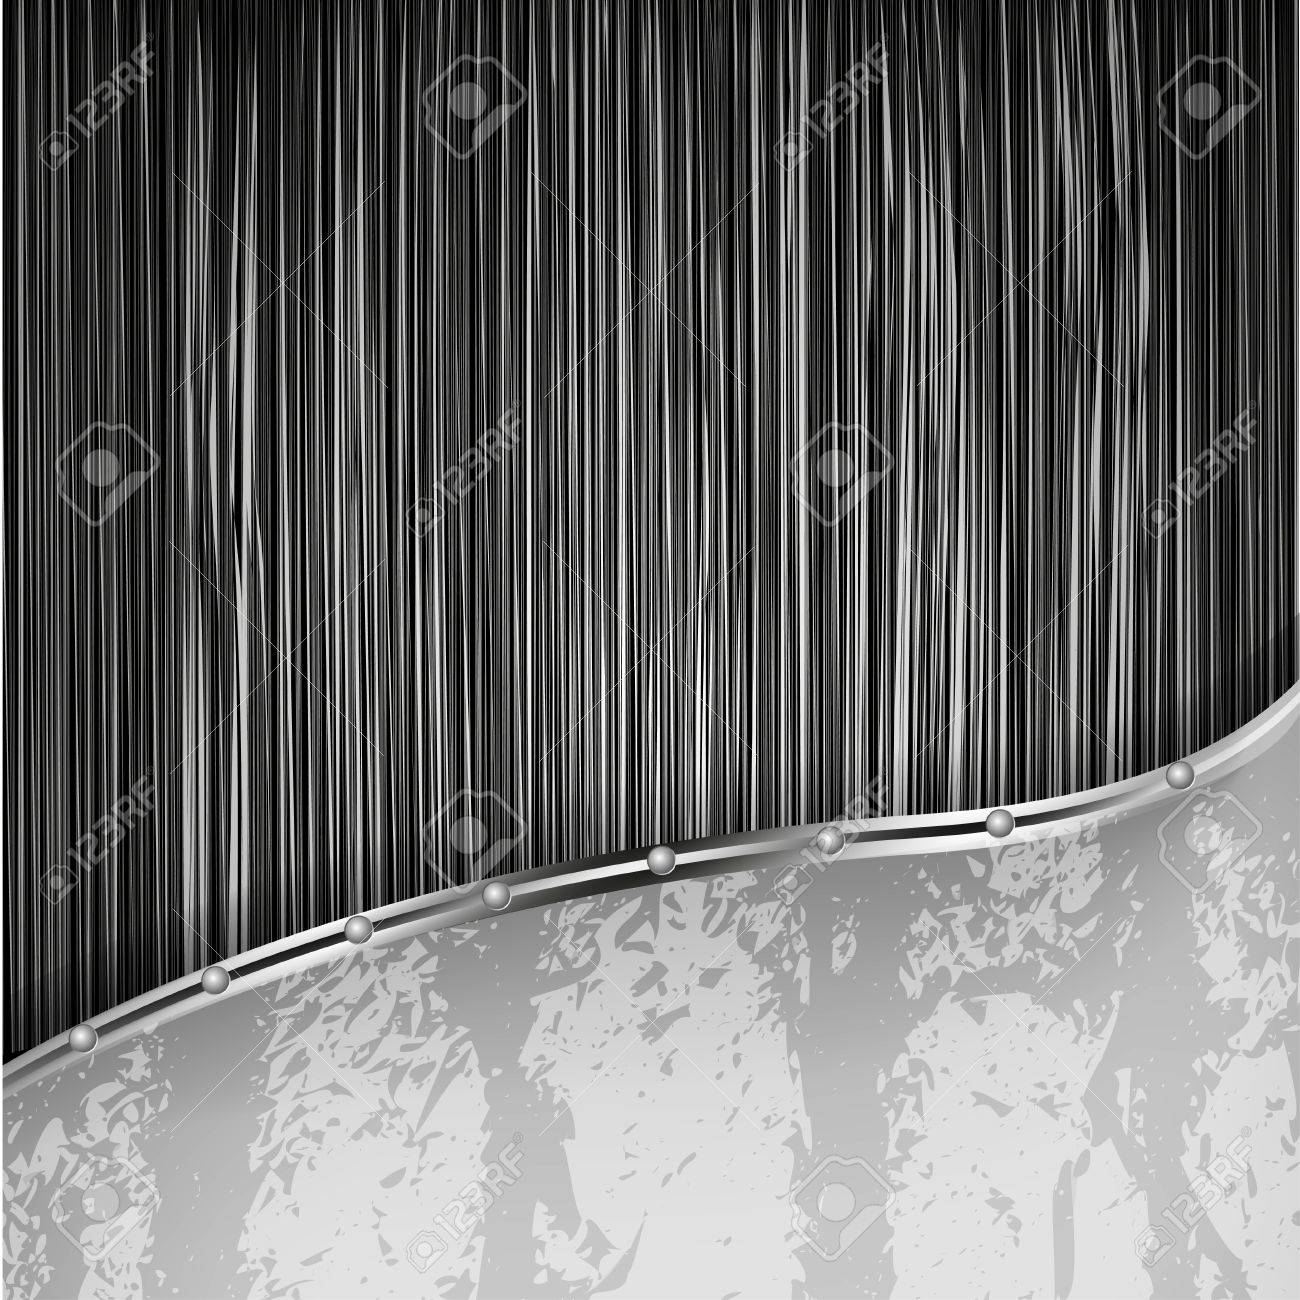 abstract metal background with steel plate. Vector illustration Stock Vector - 11779682